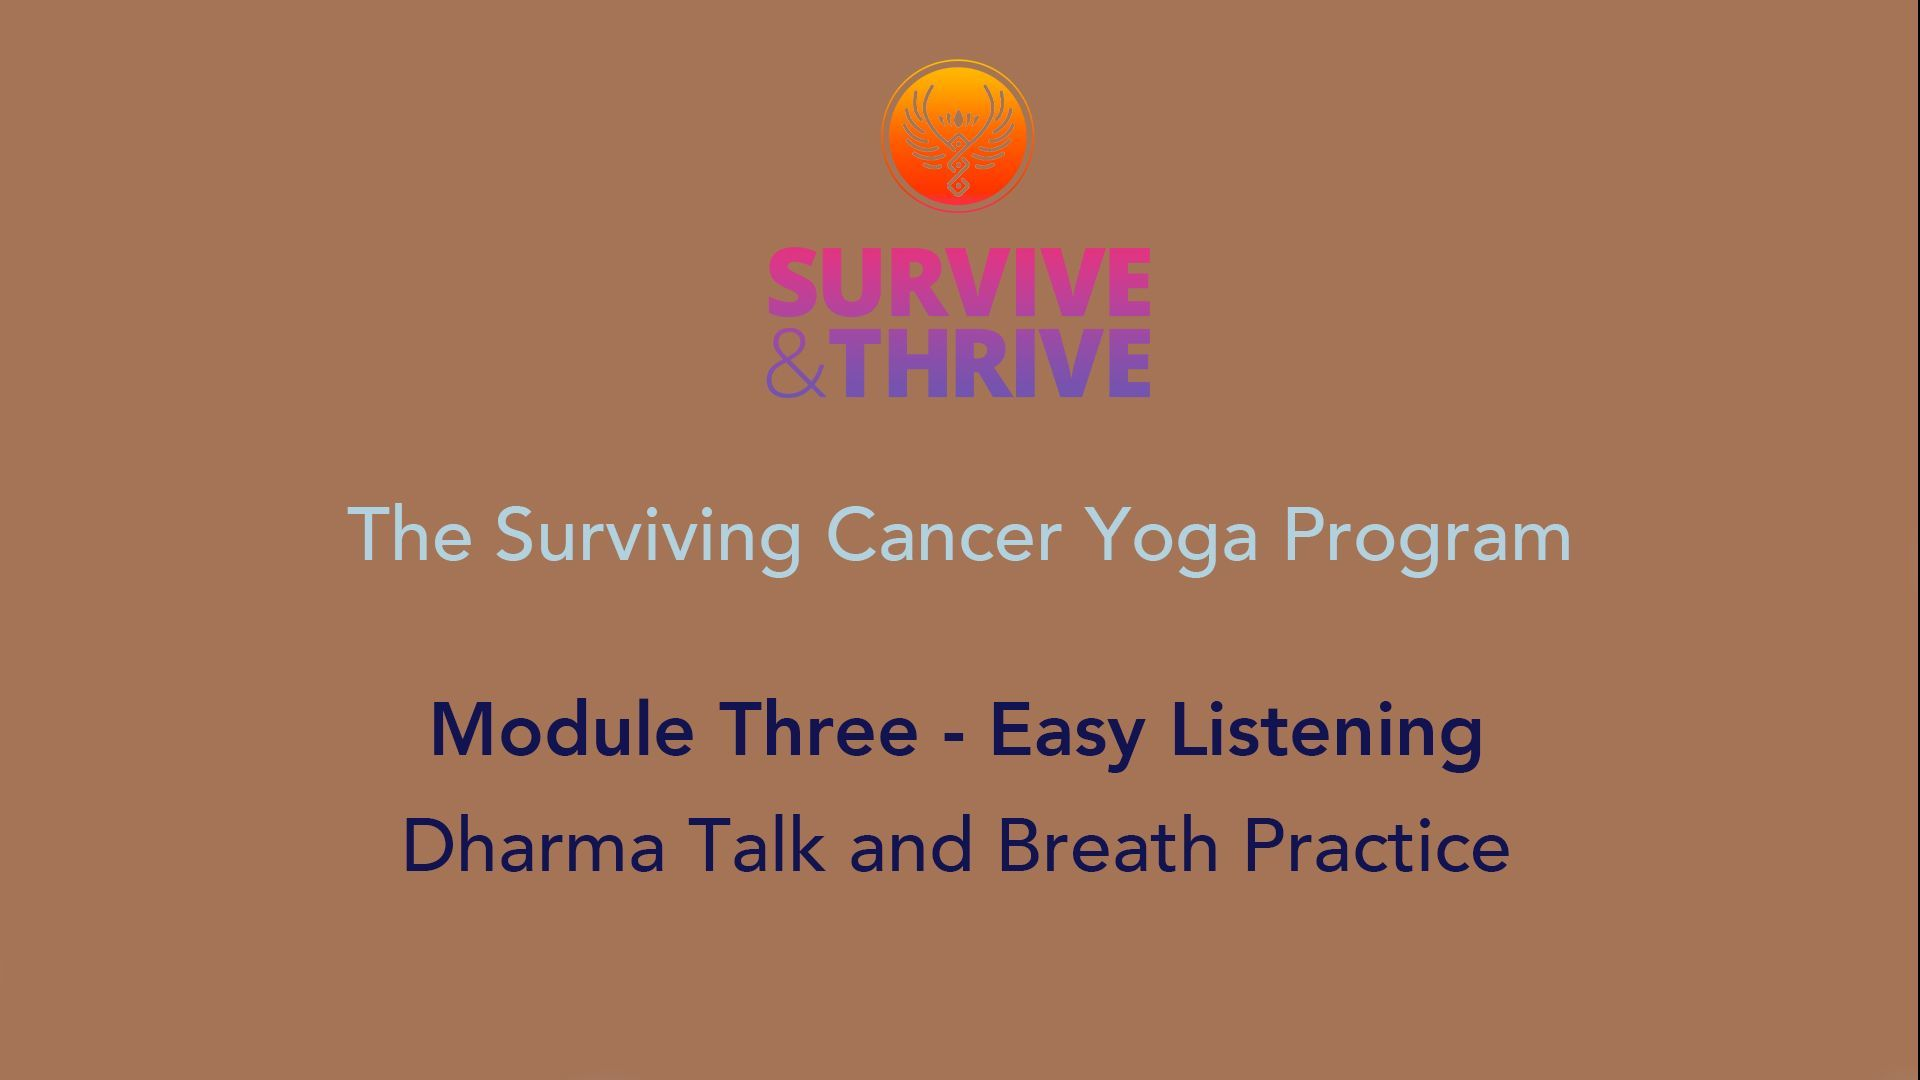 SURVIVE AND THRIVE | MODULE 3 - EASY LISTENING | DHARMA TALK